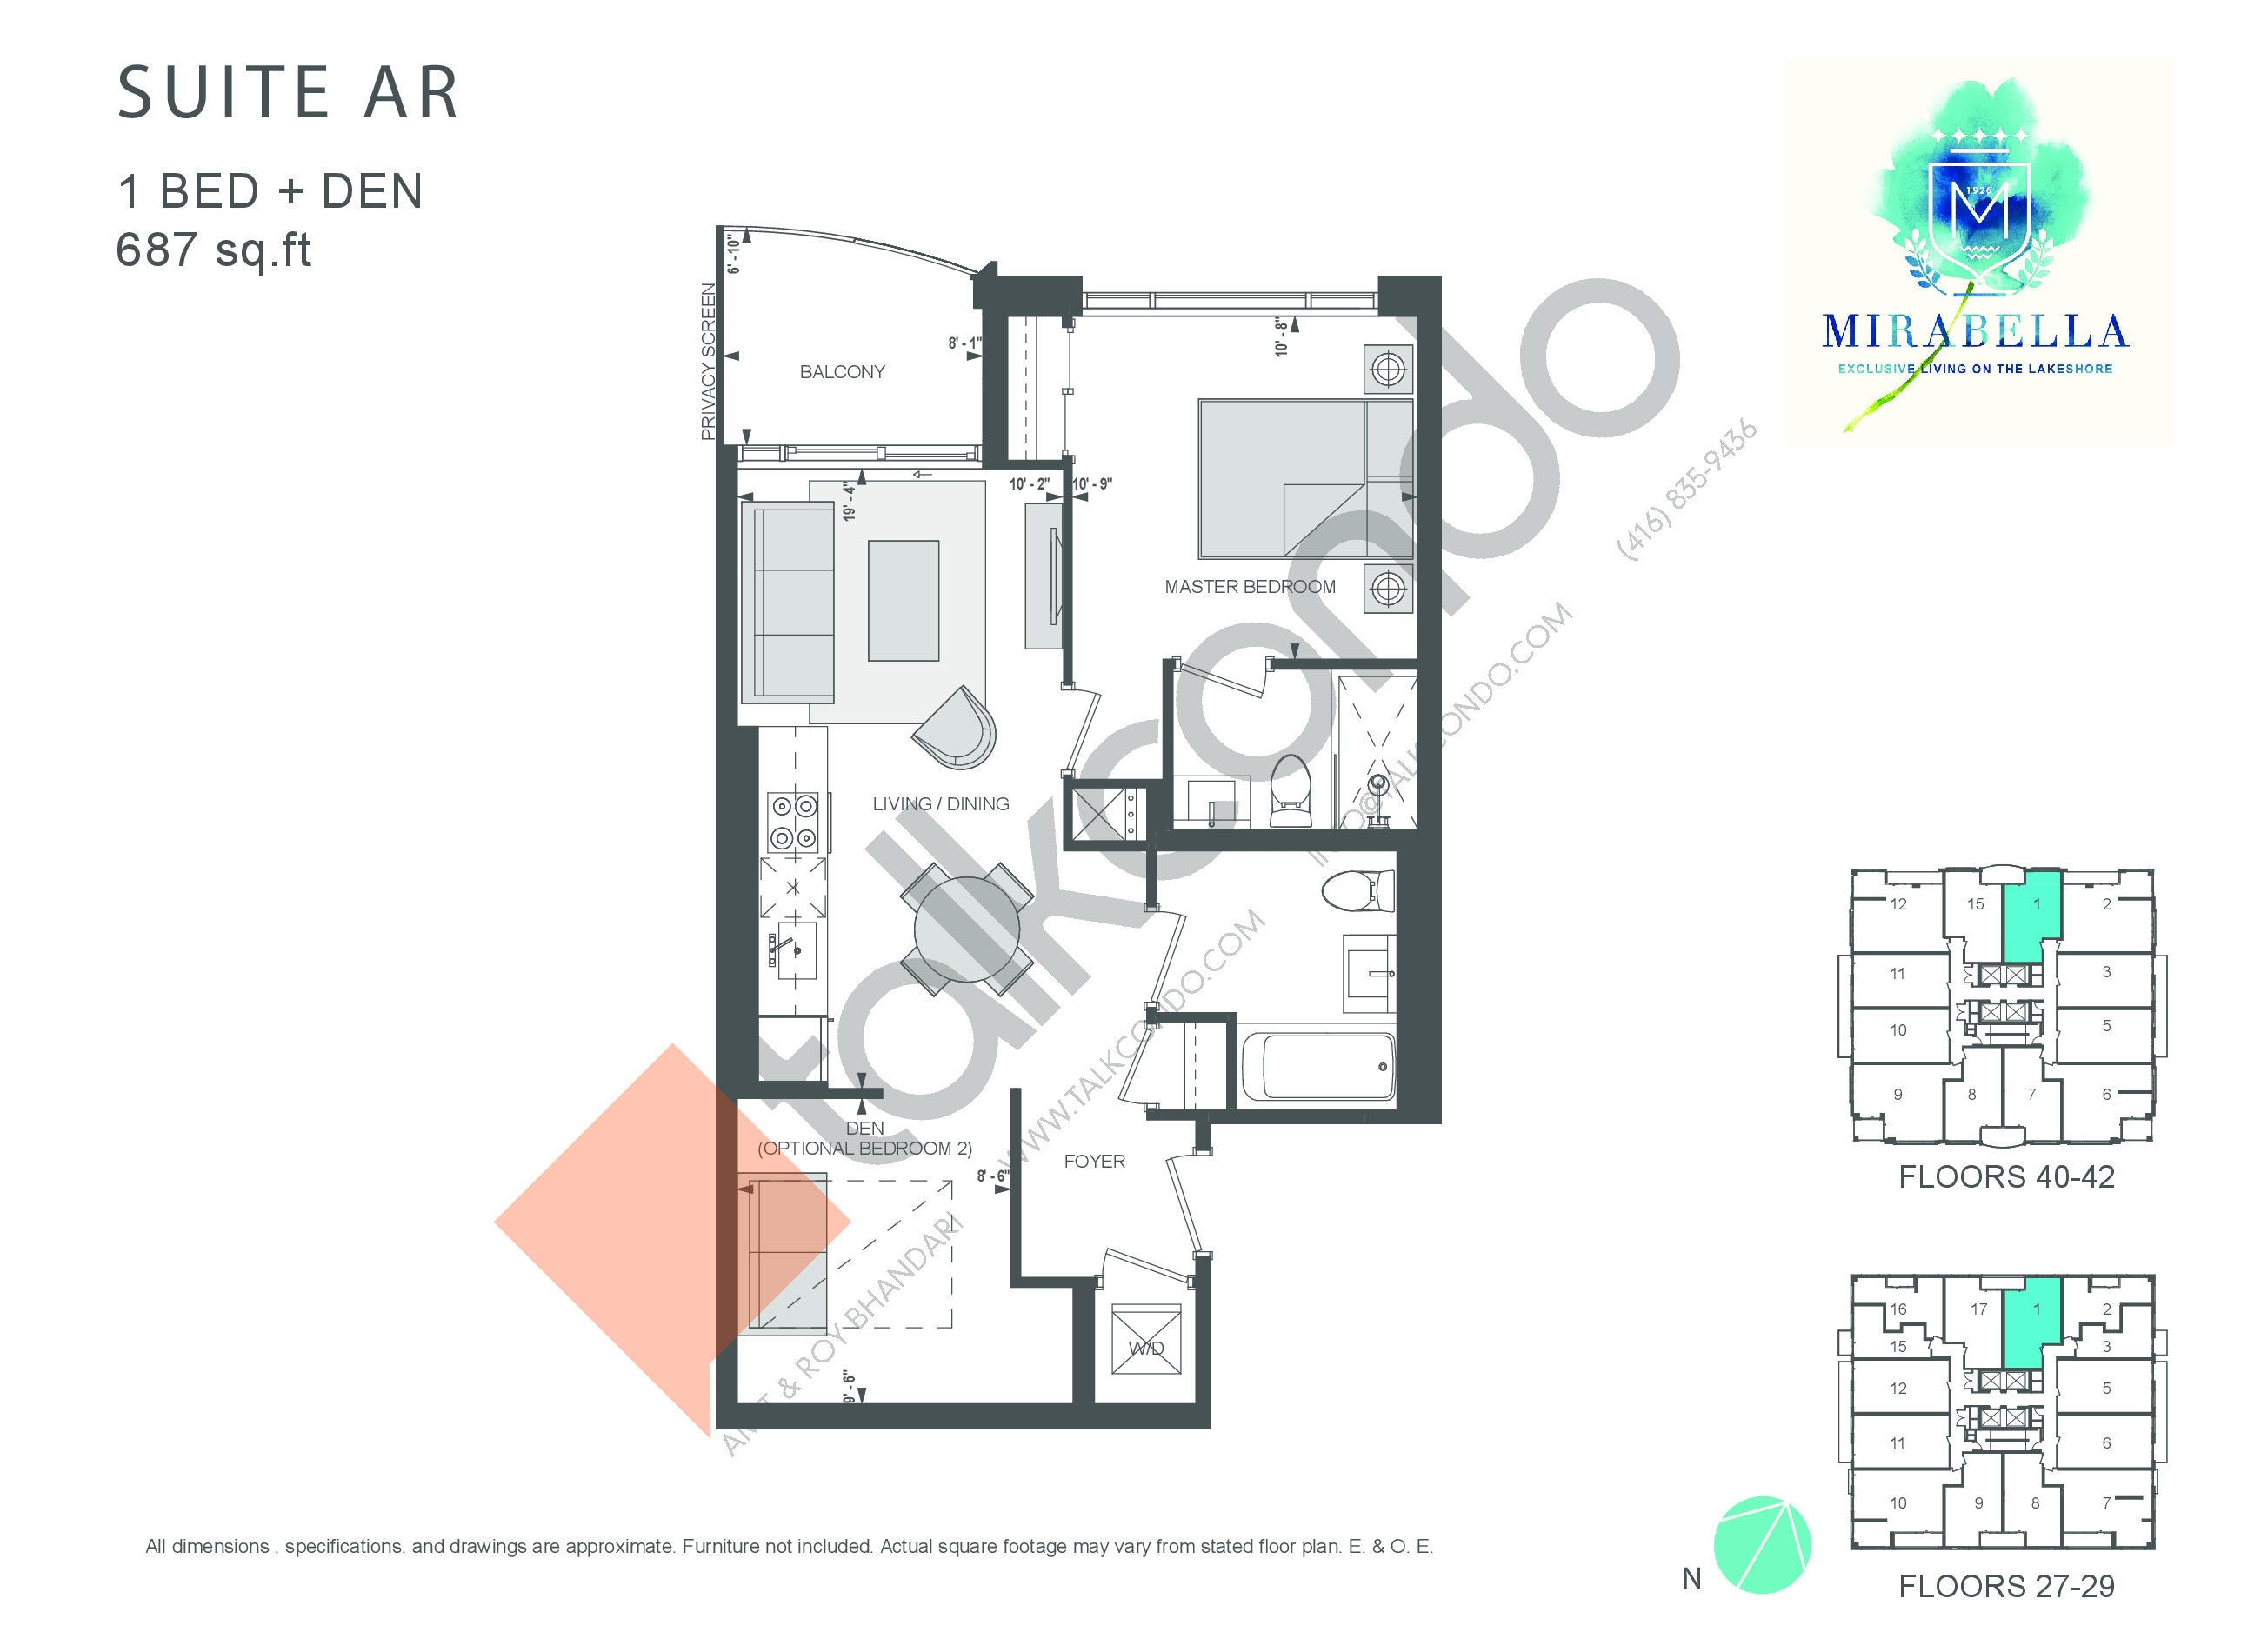 Suite AR Floor Plan at Mirabella Luxury Condos East Tower - 687 sq.ft